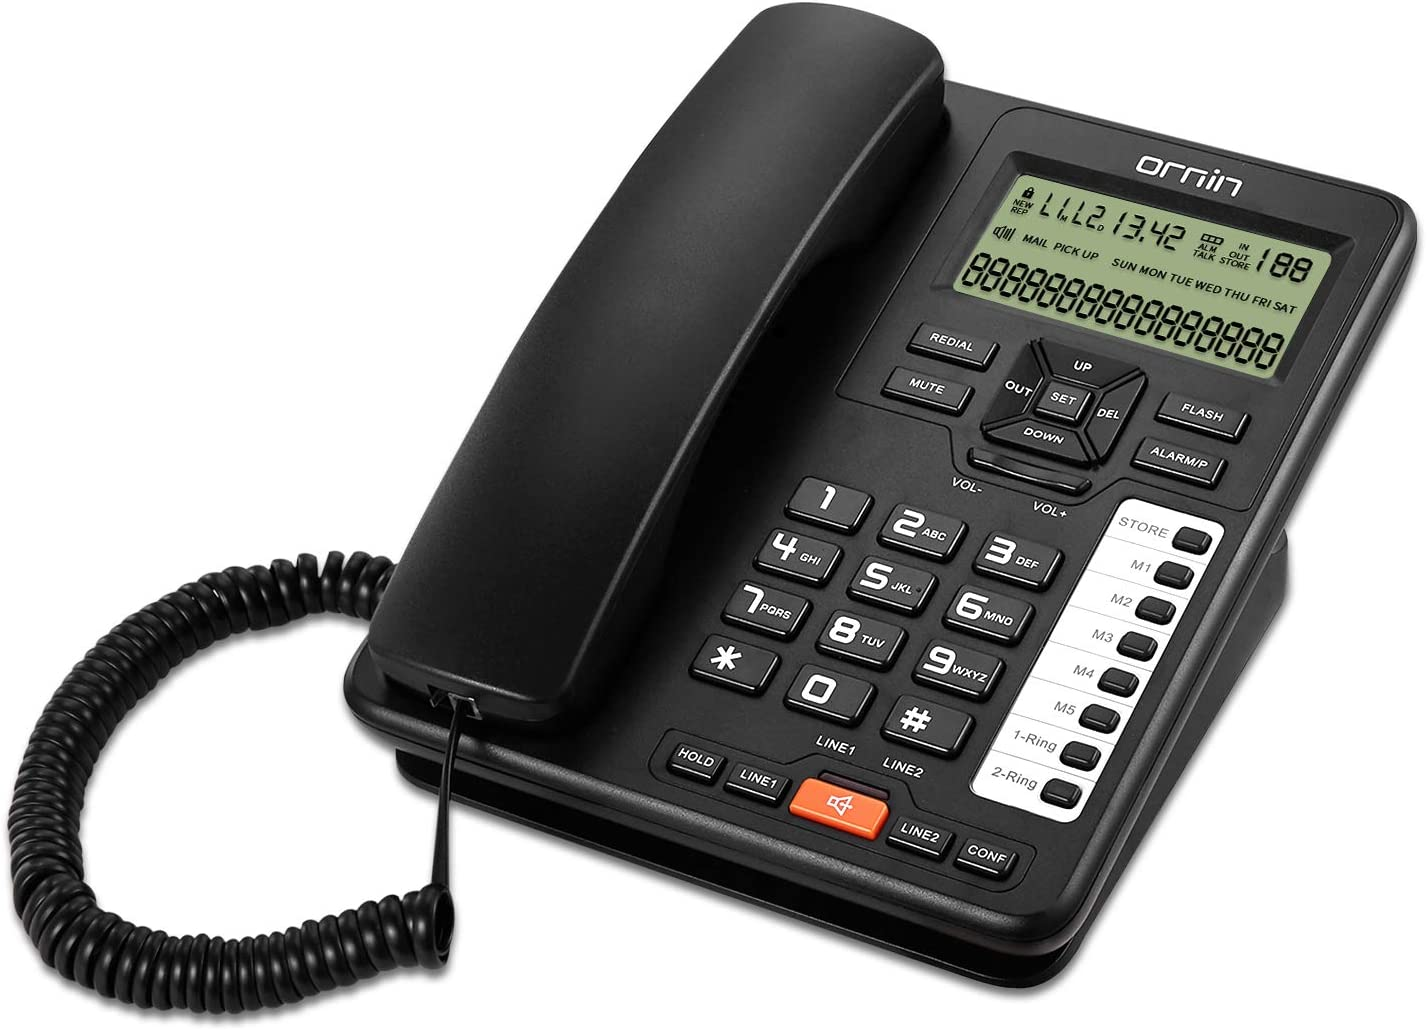 Ornin 2-Line Corded Telephone Systems Business Under blast Limited time trial price sales and for Hou Small